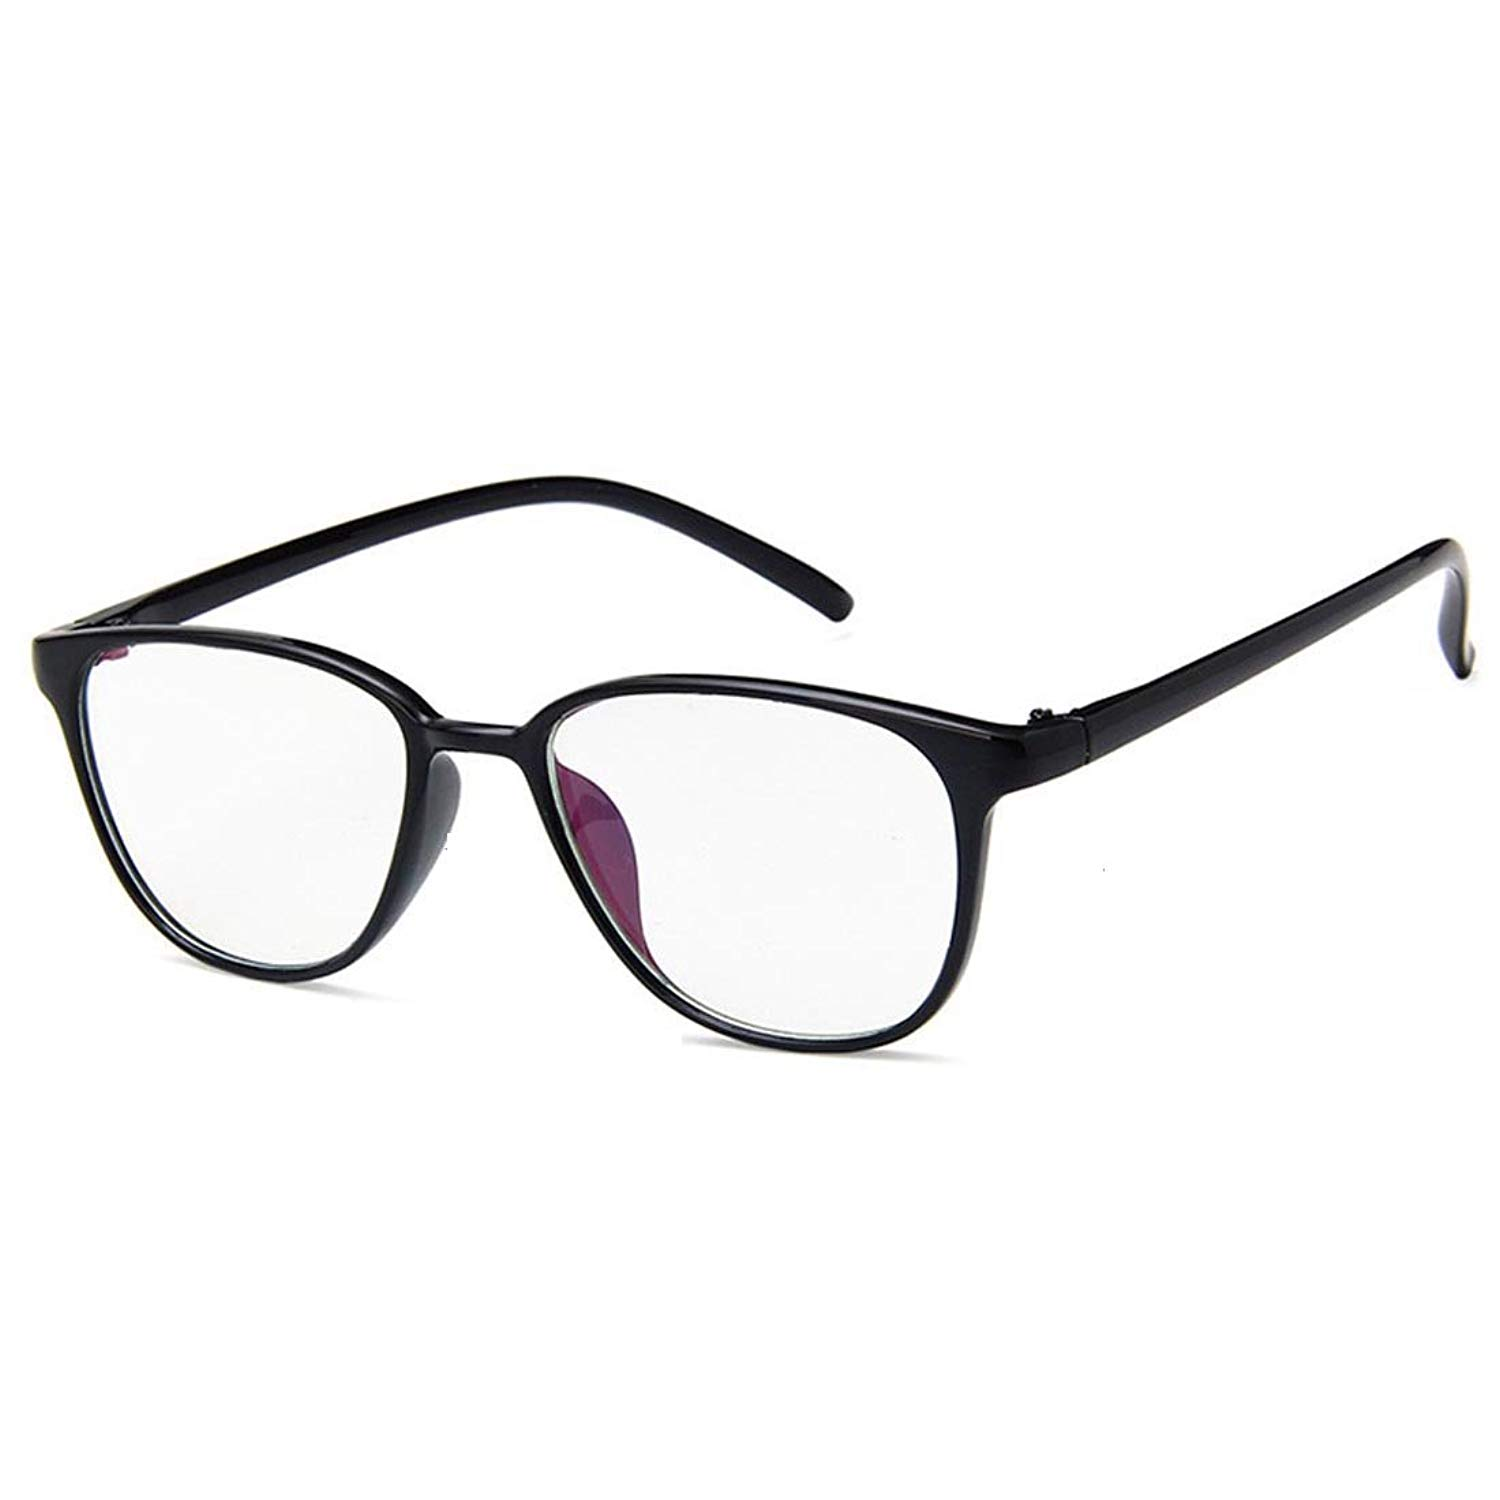 de2671450ef Get Quotations · D.king Vintage Retro Plastic Frame Women Men Eyeglass Frame  Clear Lens Glasses